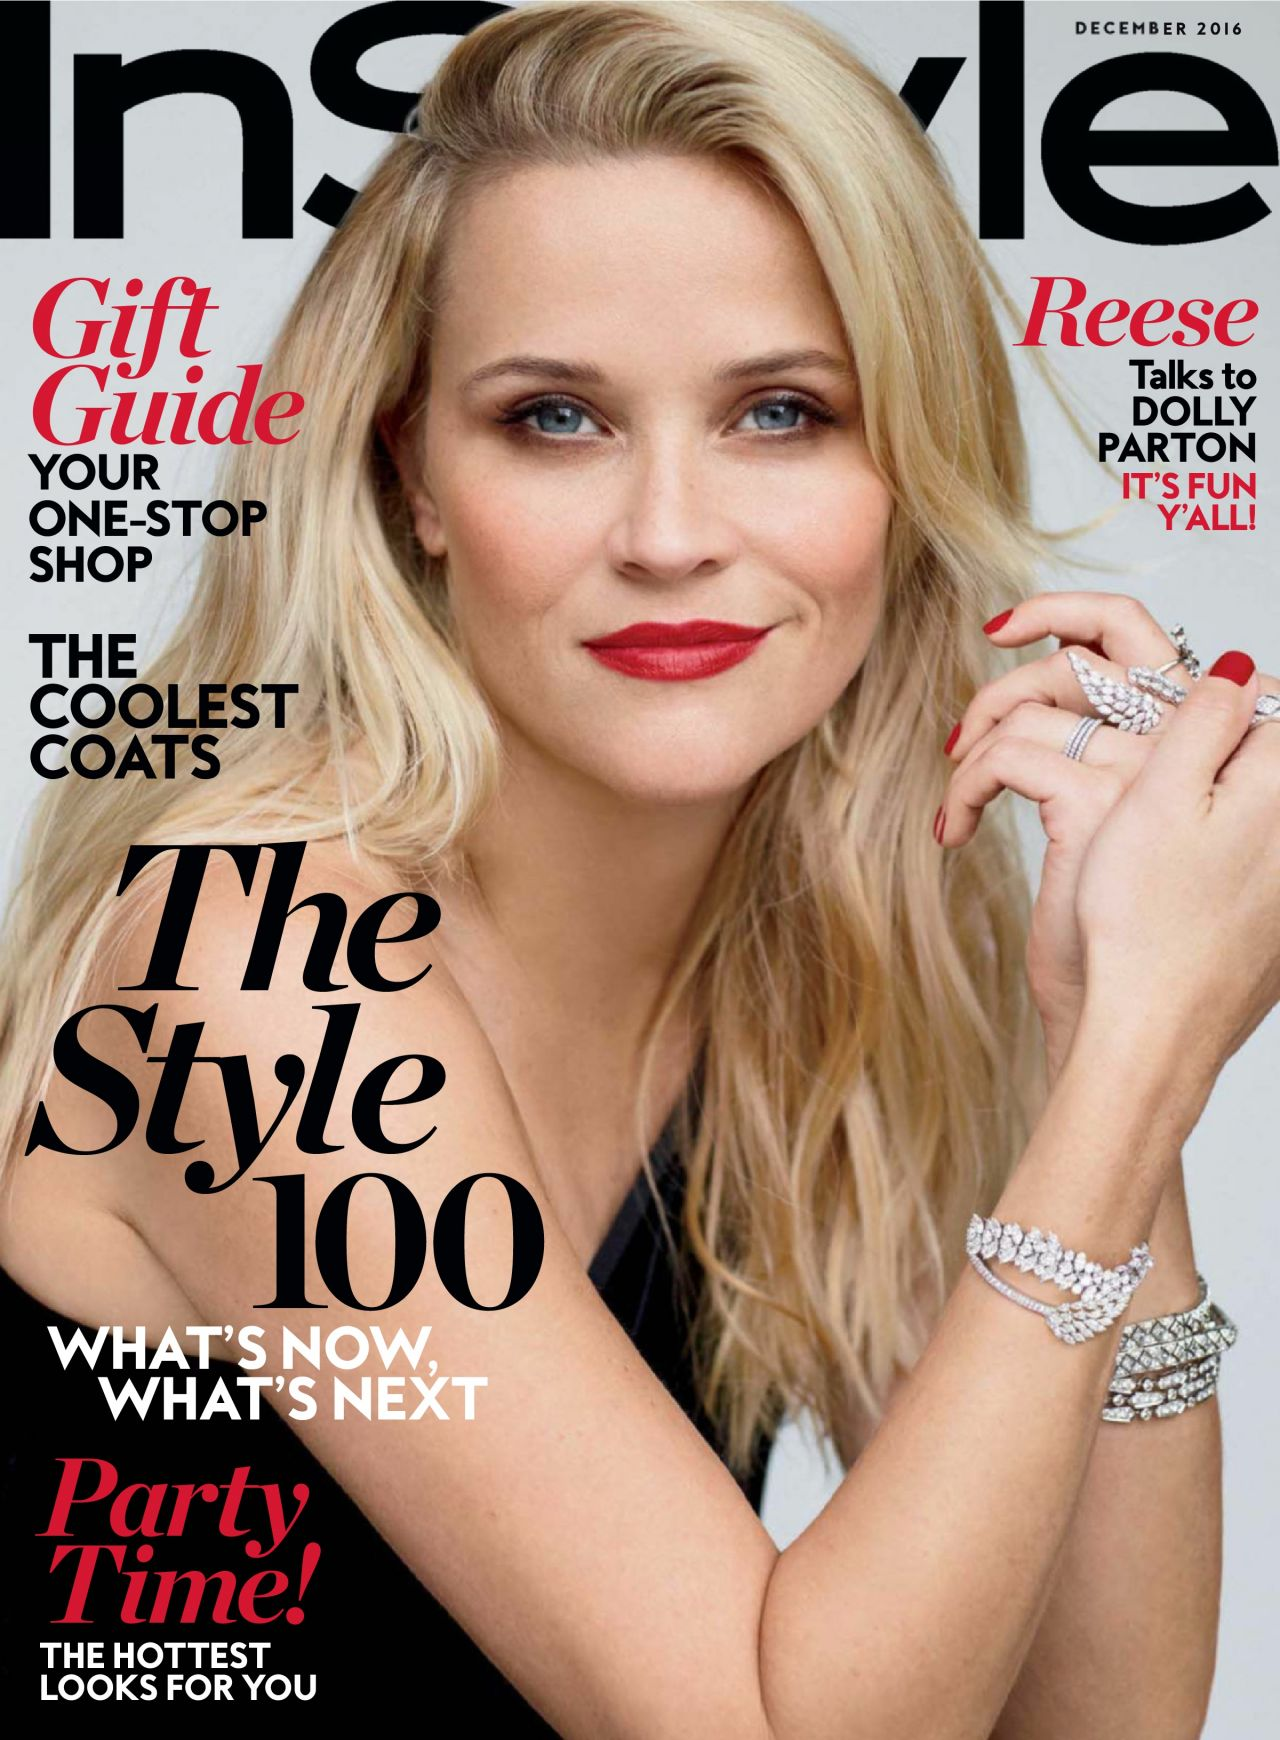 Instyle Magazine Us: December 2016 Issue